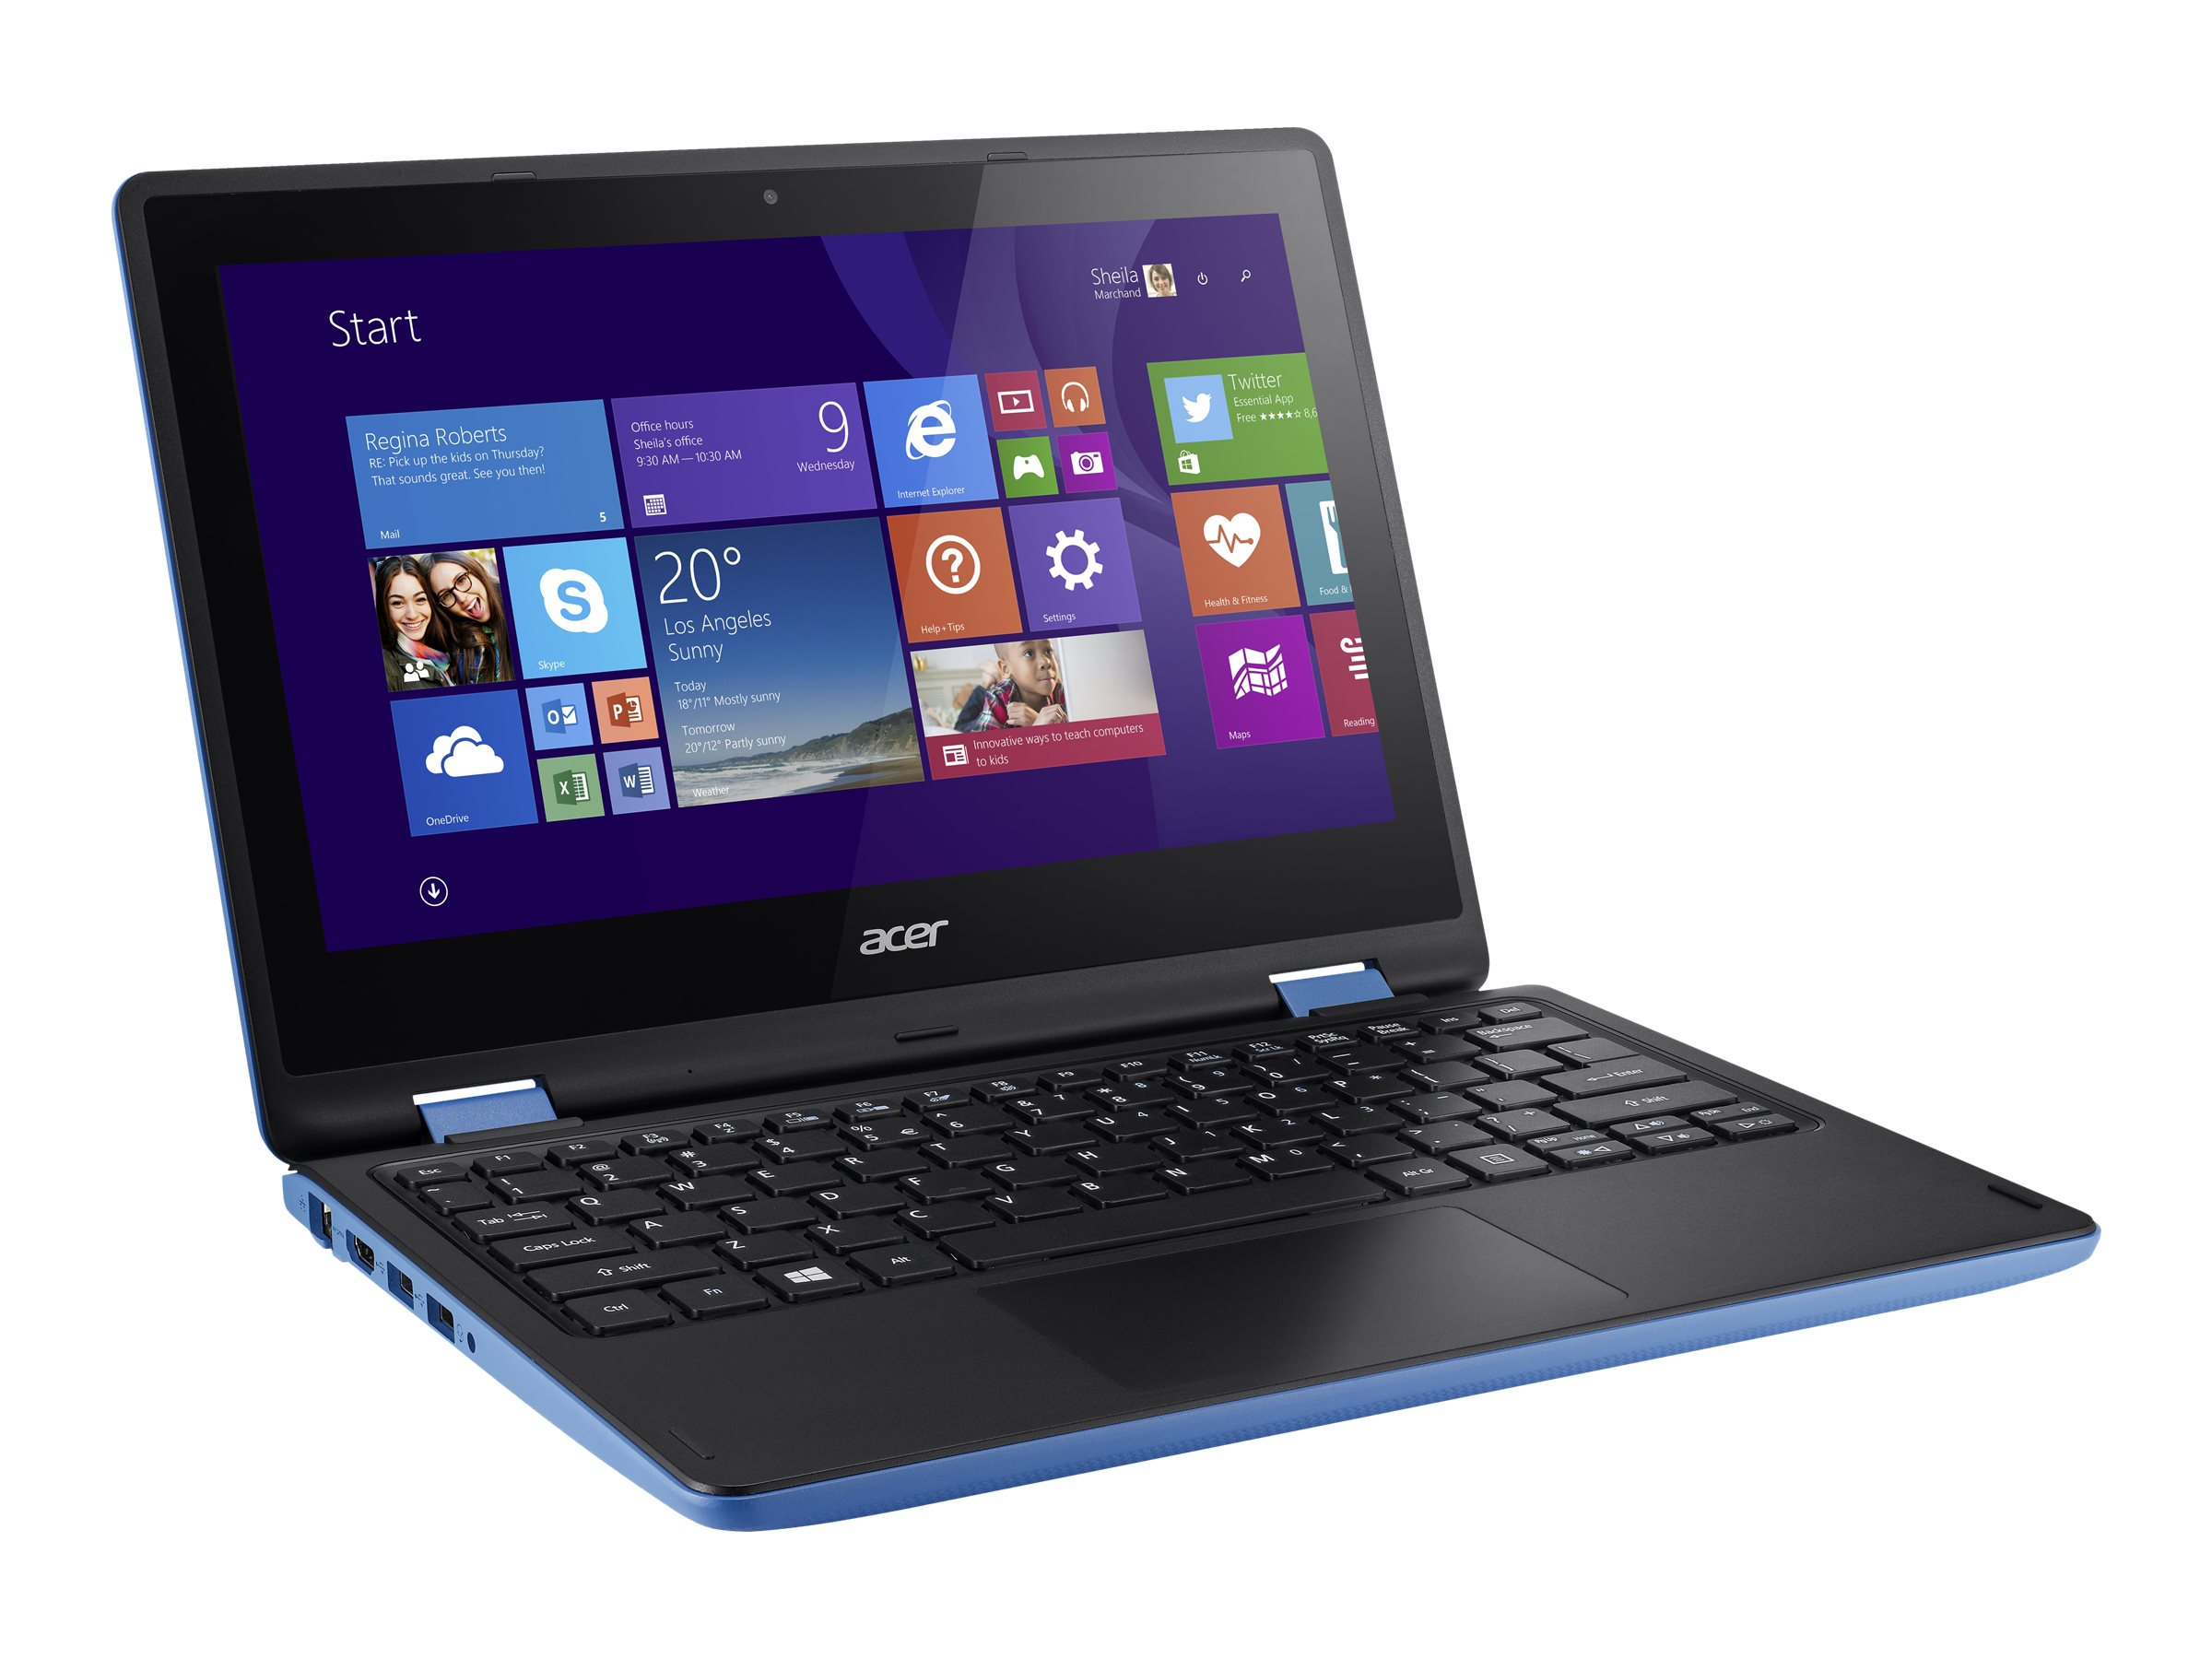 Acer NX.G10AA.008 Image 15